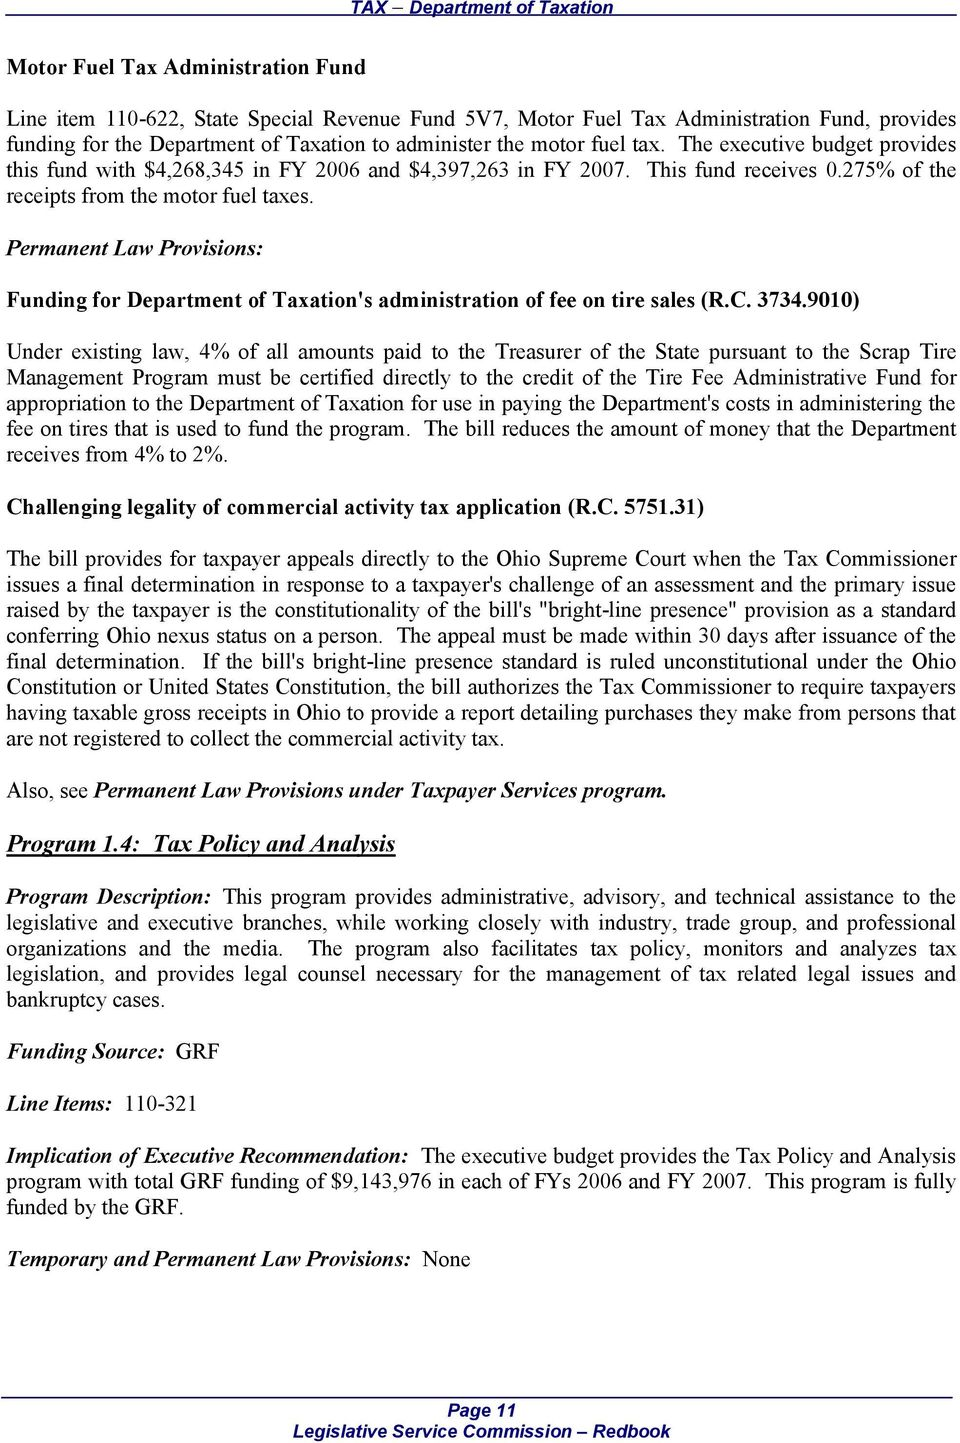 Permanent Law Provisions: Funding for Department of Taxation's administration of fee on tire sales (R.C. 3734.